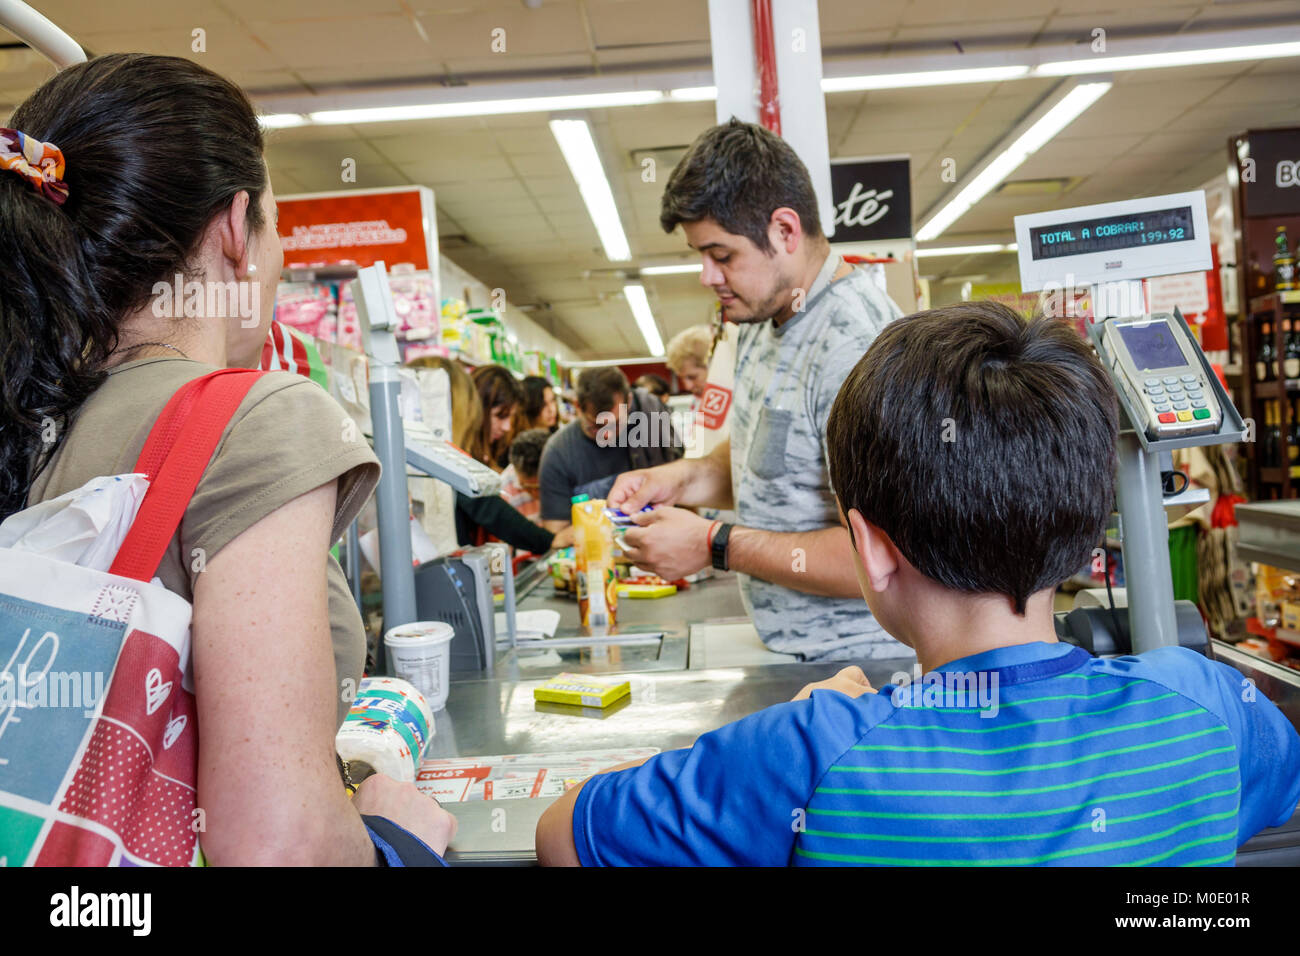 Buenos Aires Argentina San Telmo shopping interior grocery store supermarket food cashier woman boy mother son man - Stock Image